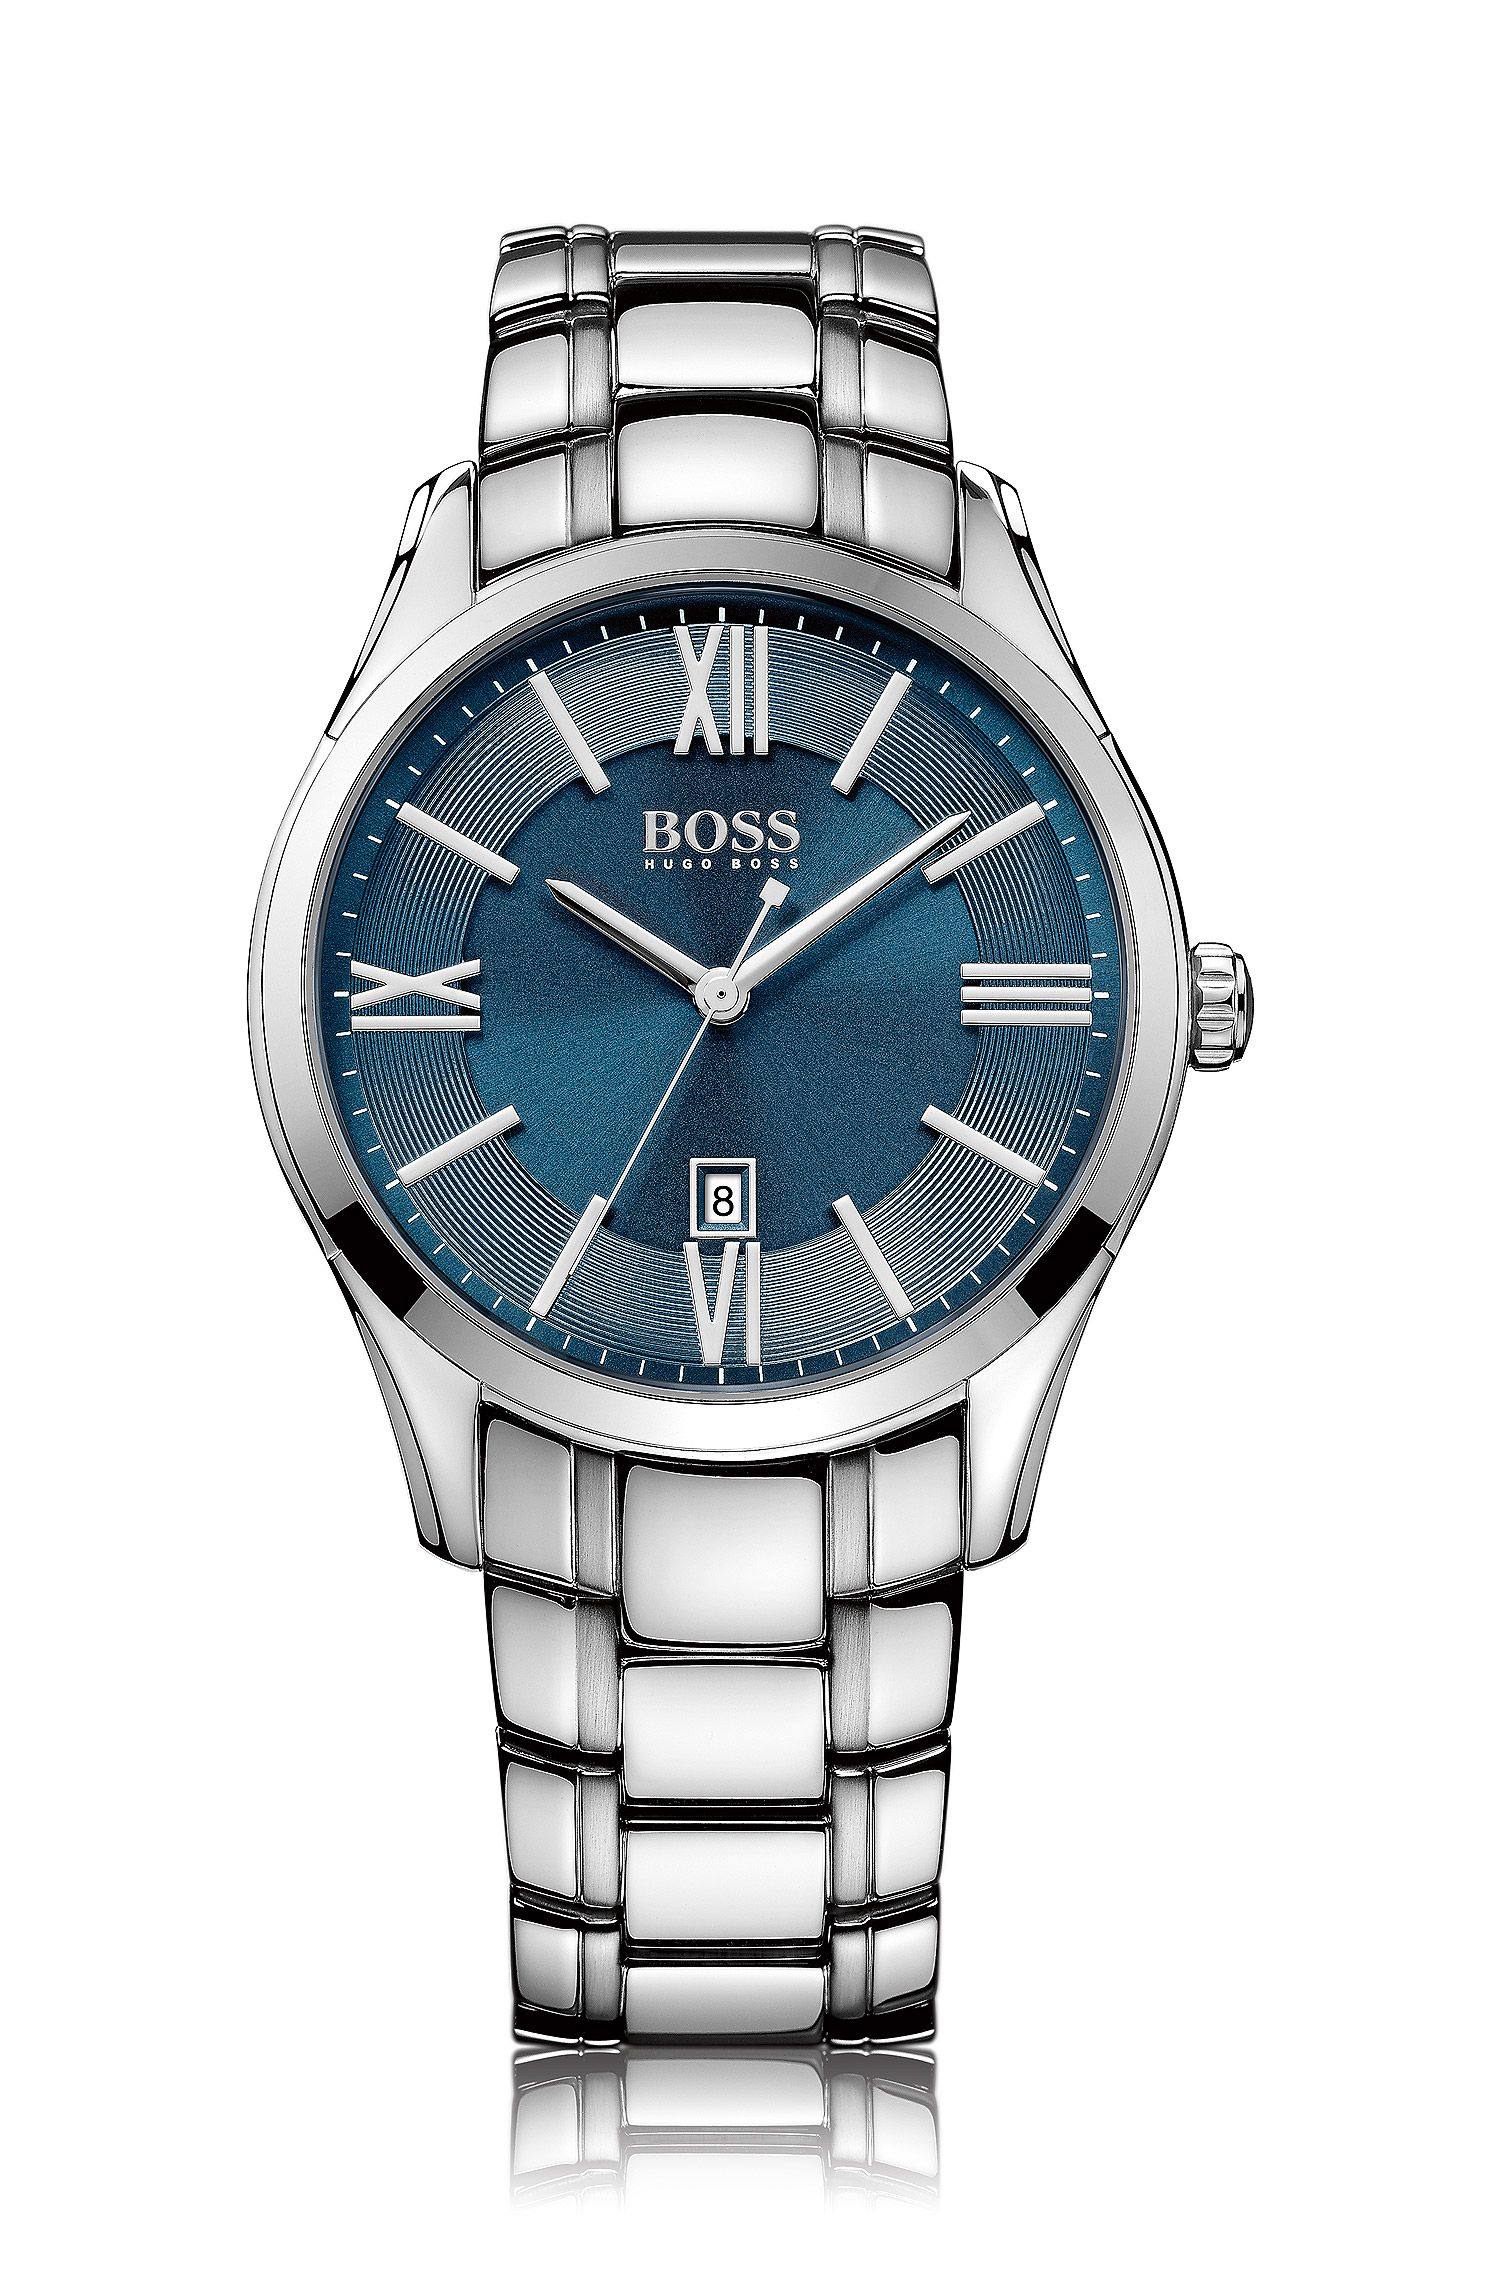 Polished stainless-steel watch with blue sunray dial and tapered bracelet